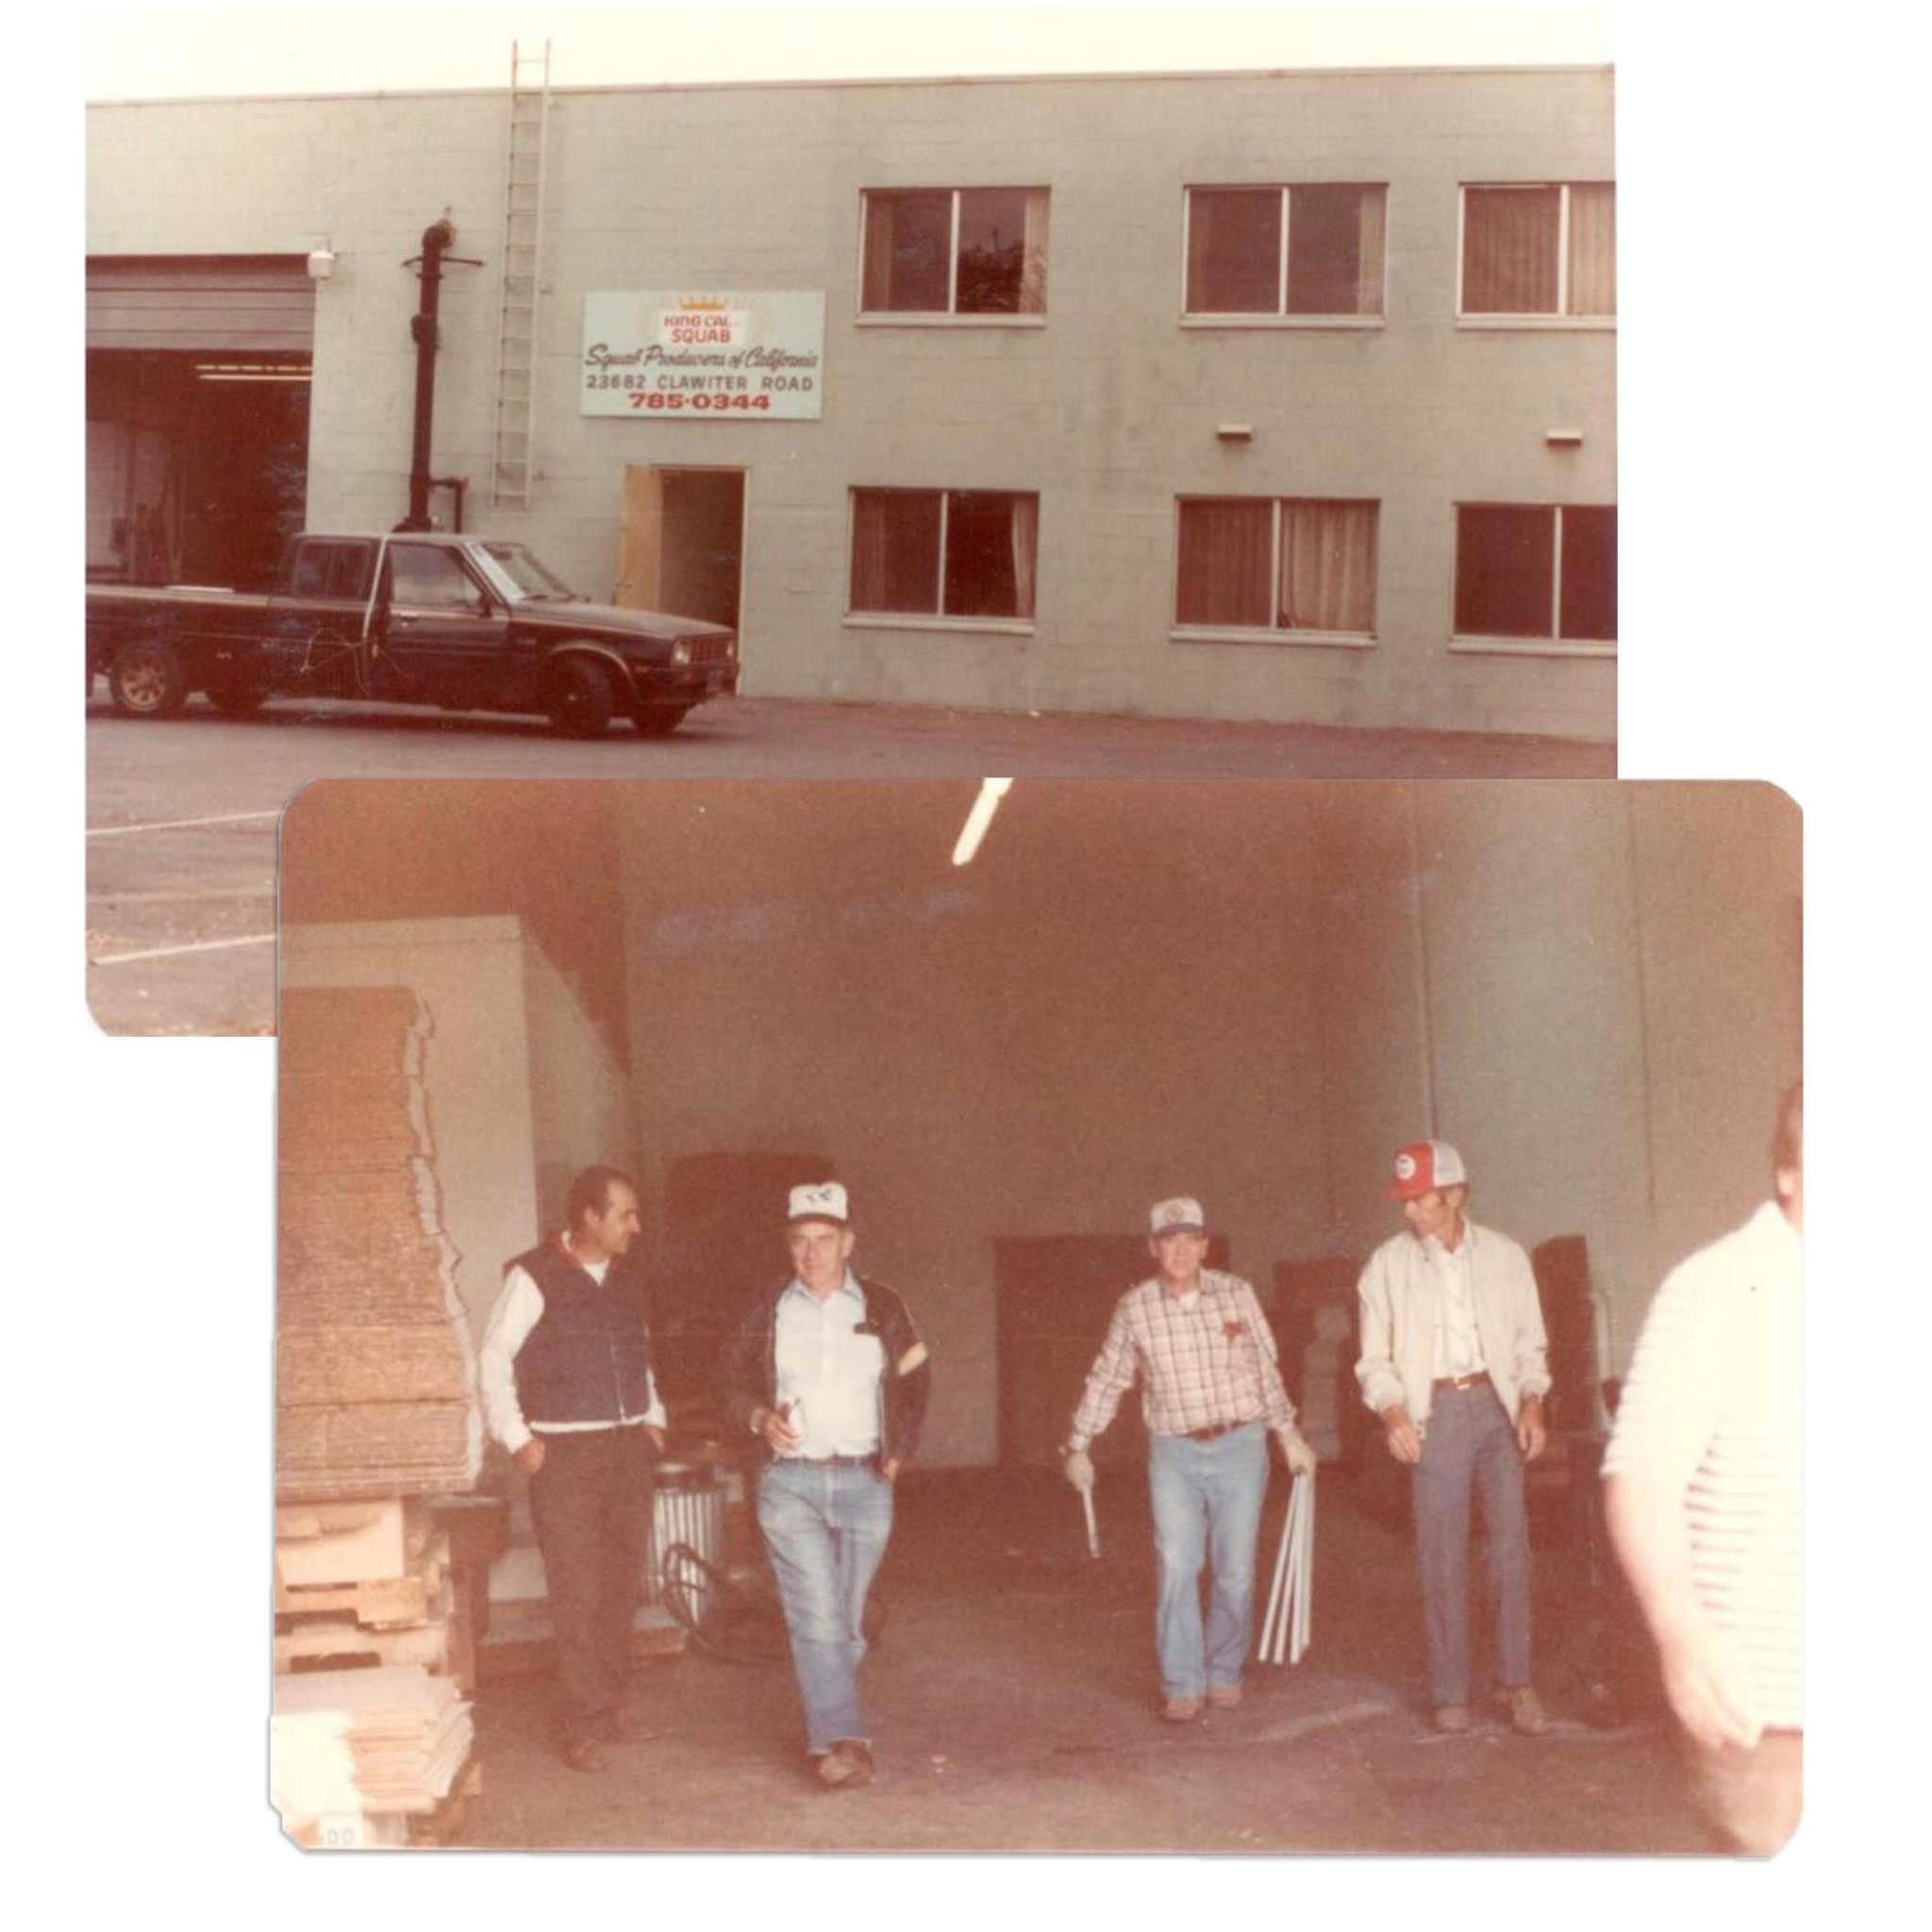 1982. Moving day from old plant in Hayward, California to new facility in Modesto.